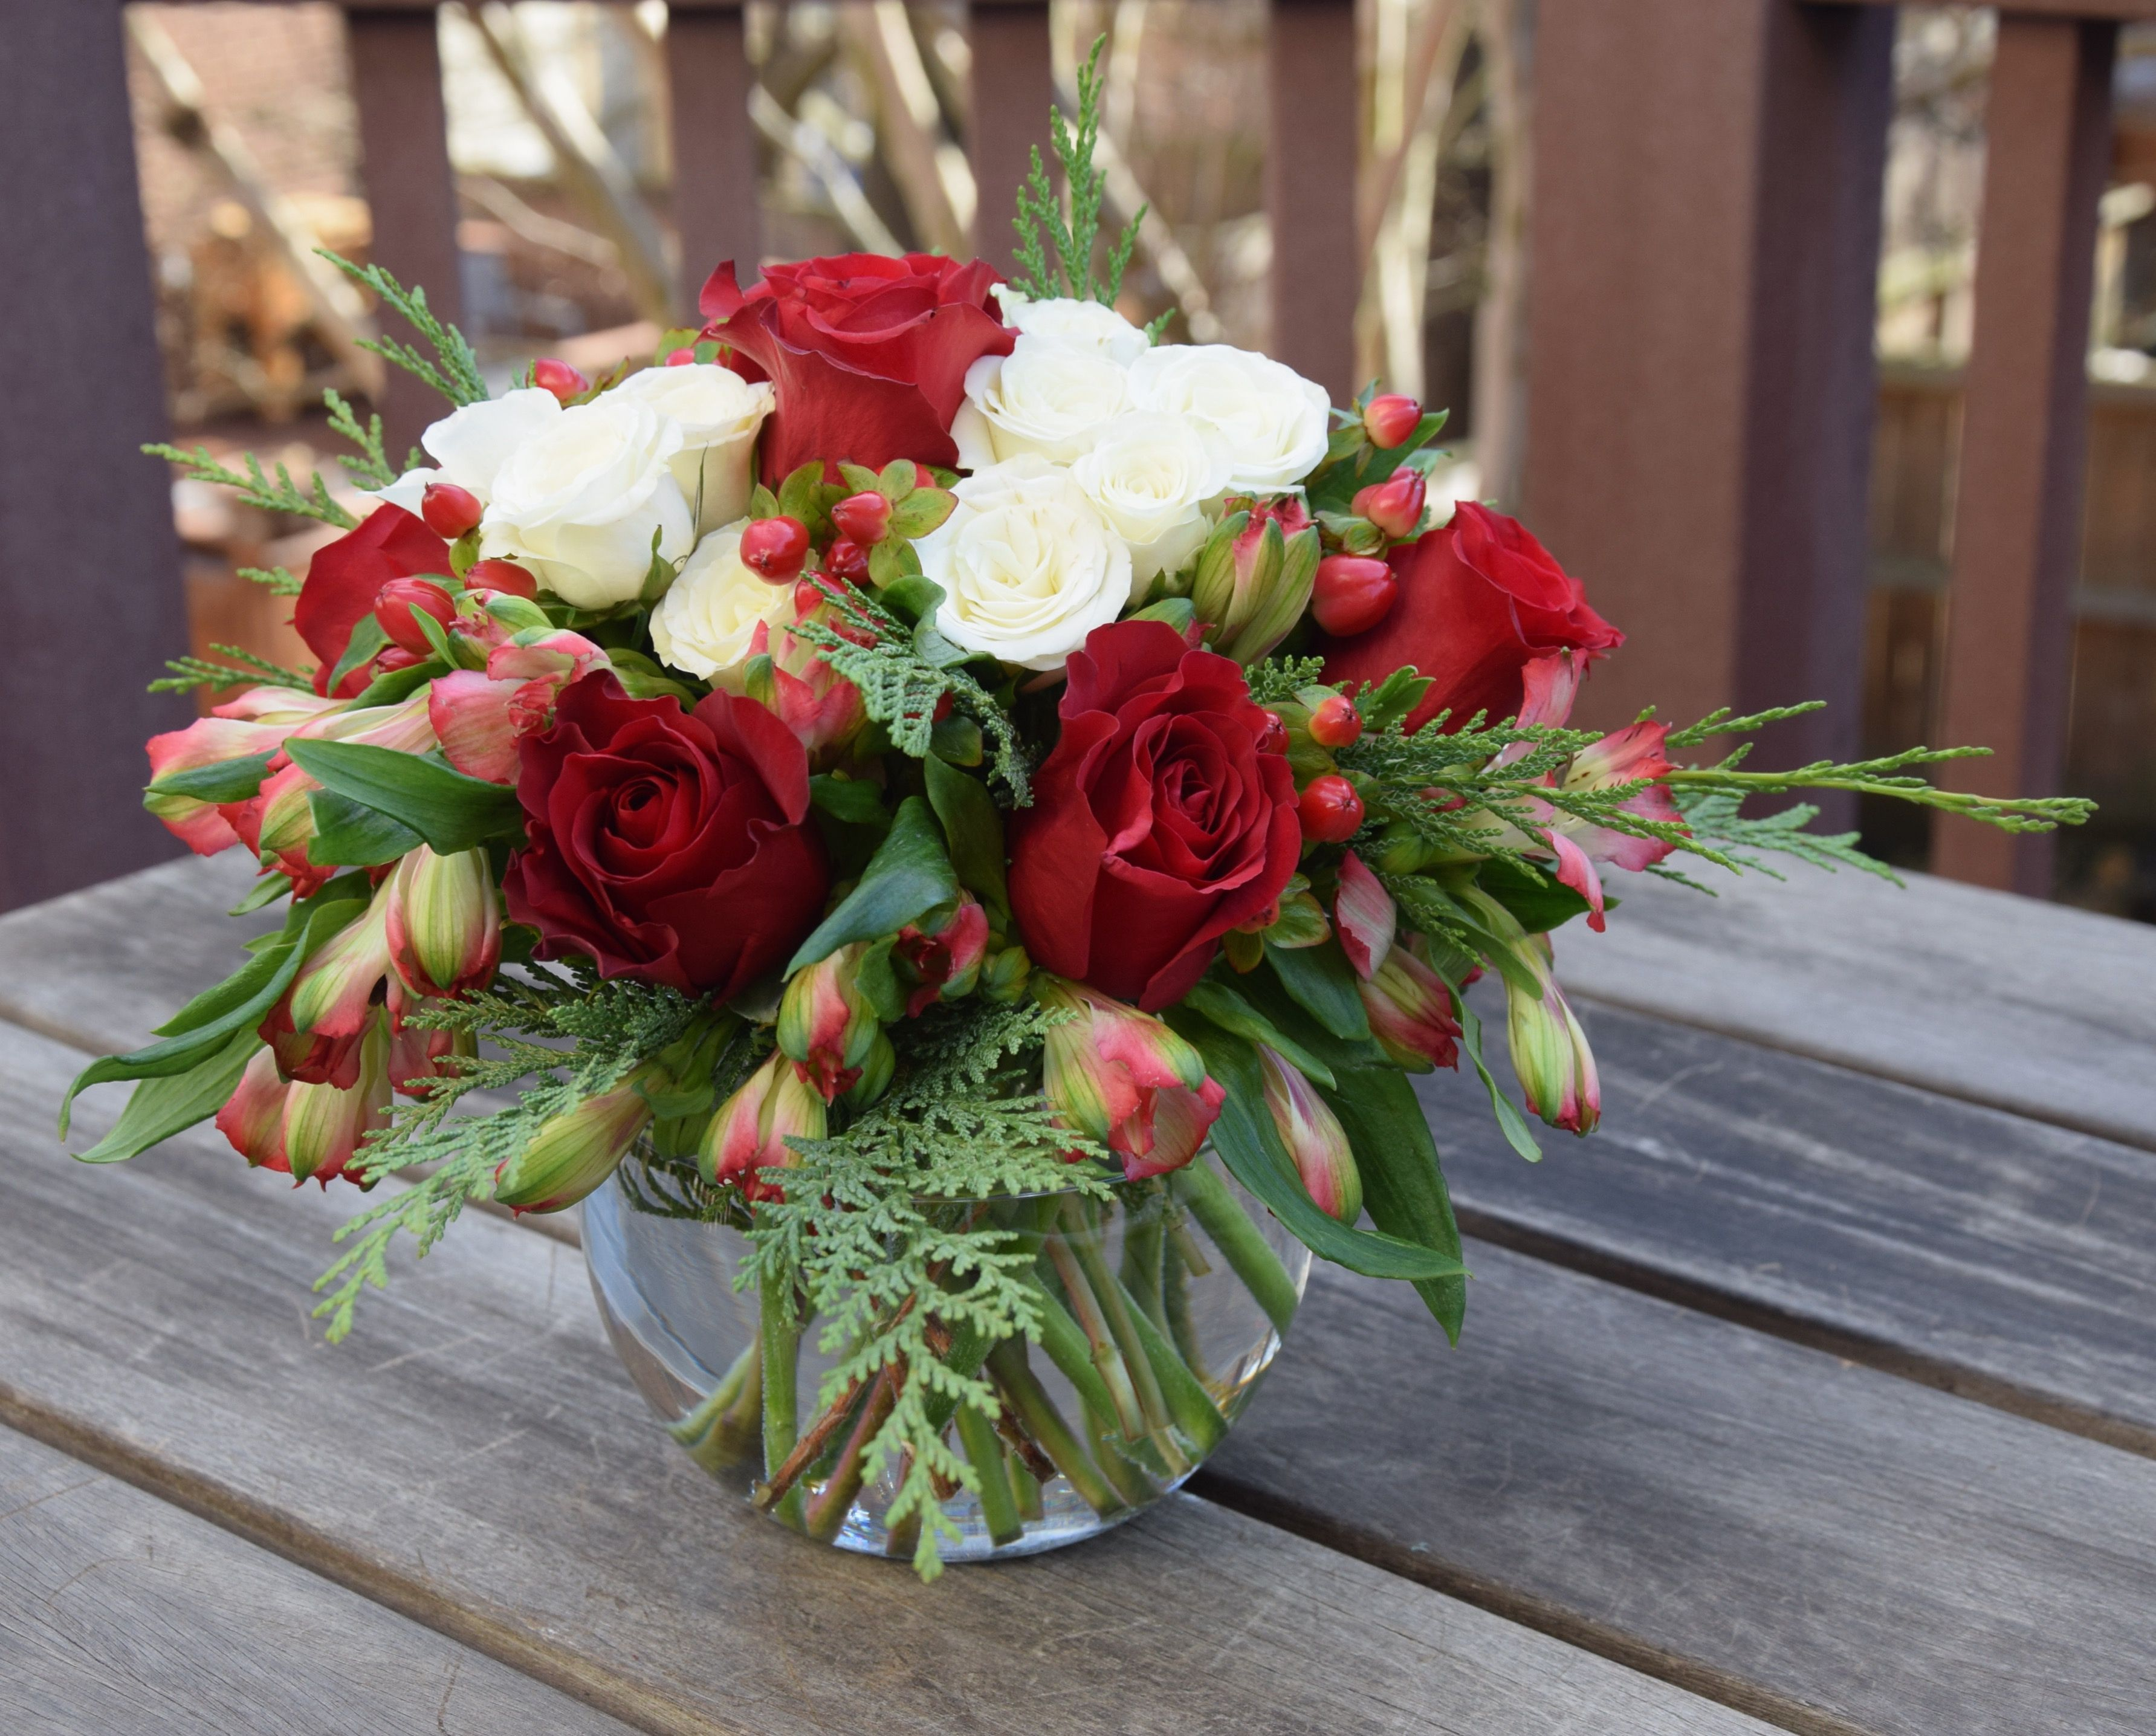 Flower bouquet in a glass bowl with roses alstroemerias hypericum flower bouquet in a glass bowl with roses alstroemerias hypericum izmirmasajfo